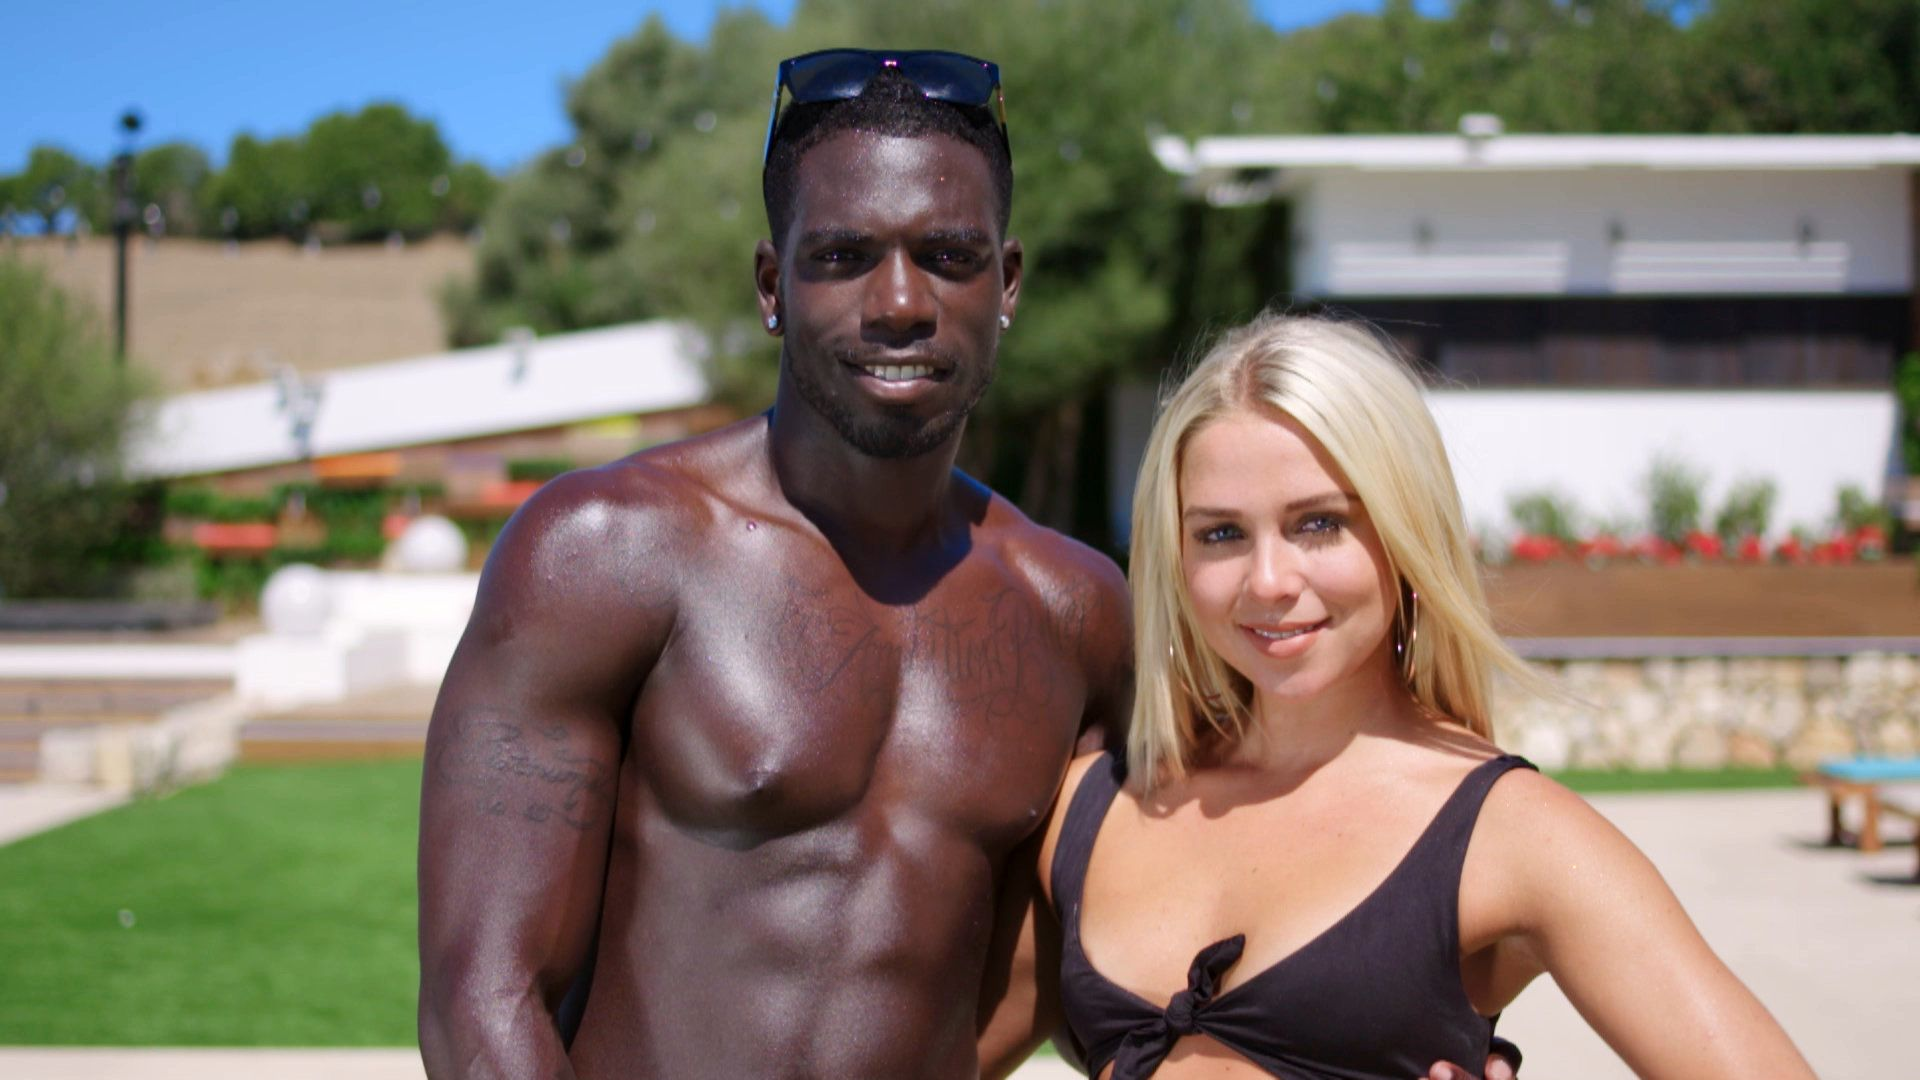 Love Island: Marcel Somerville responds to racist abuse sent to Gabby Allen